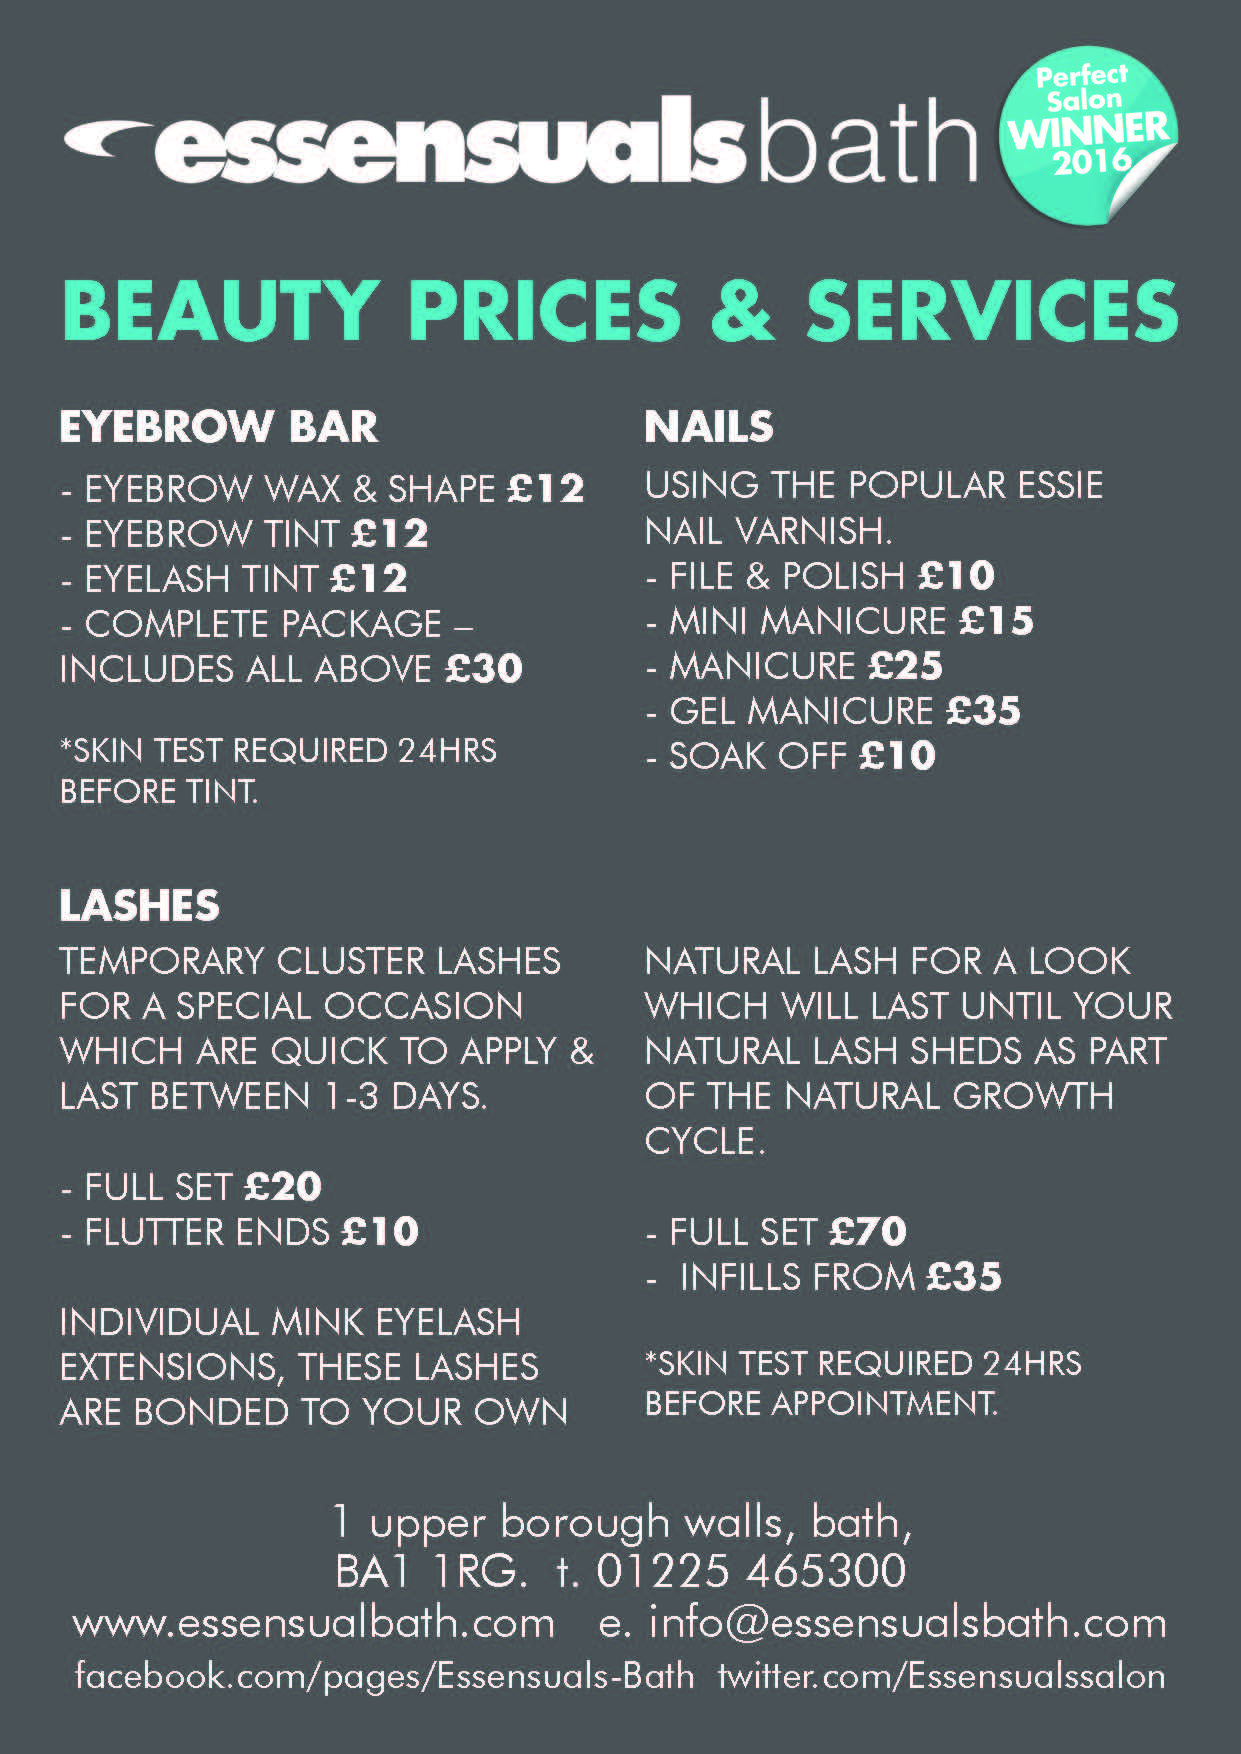 Beauty Salon Prices Services Essensuals Bath Perfect Salon Winner 2016